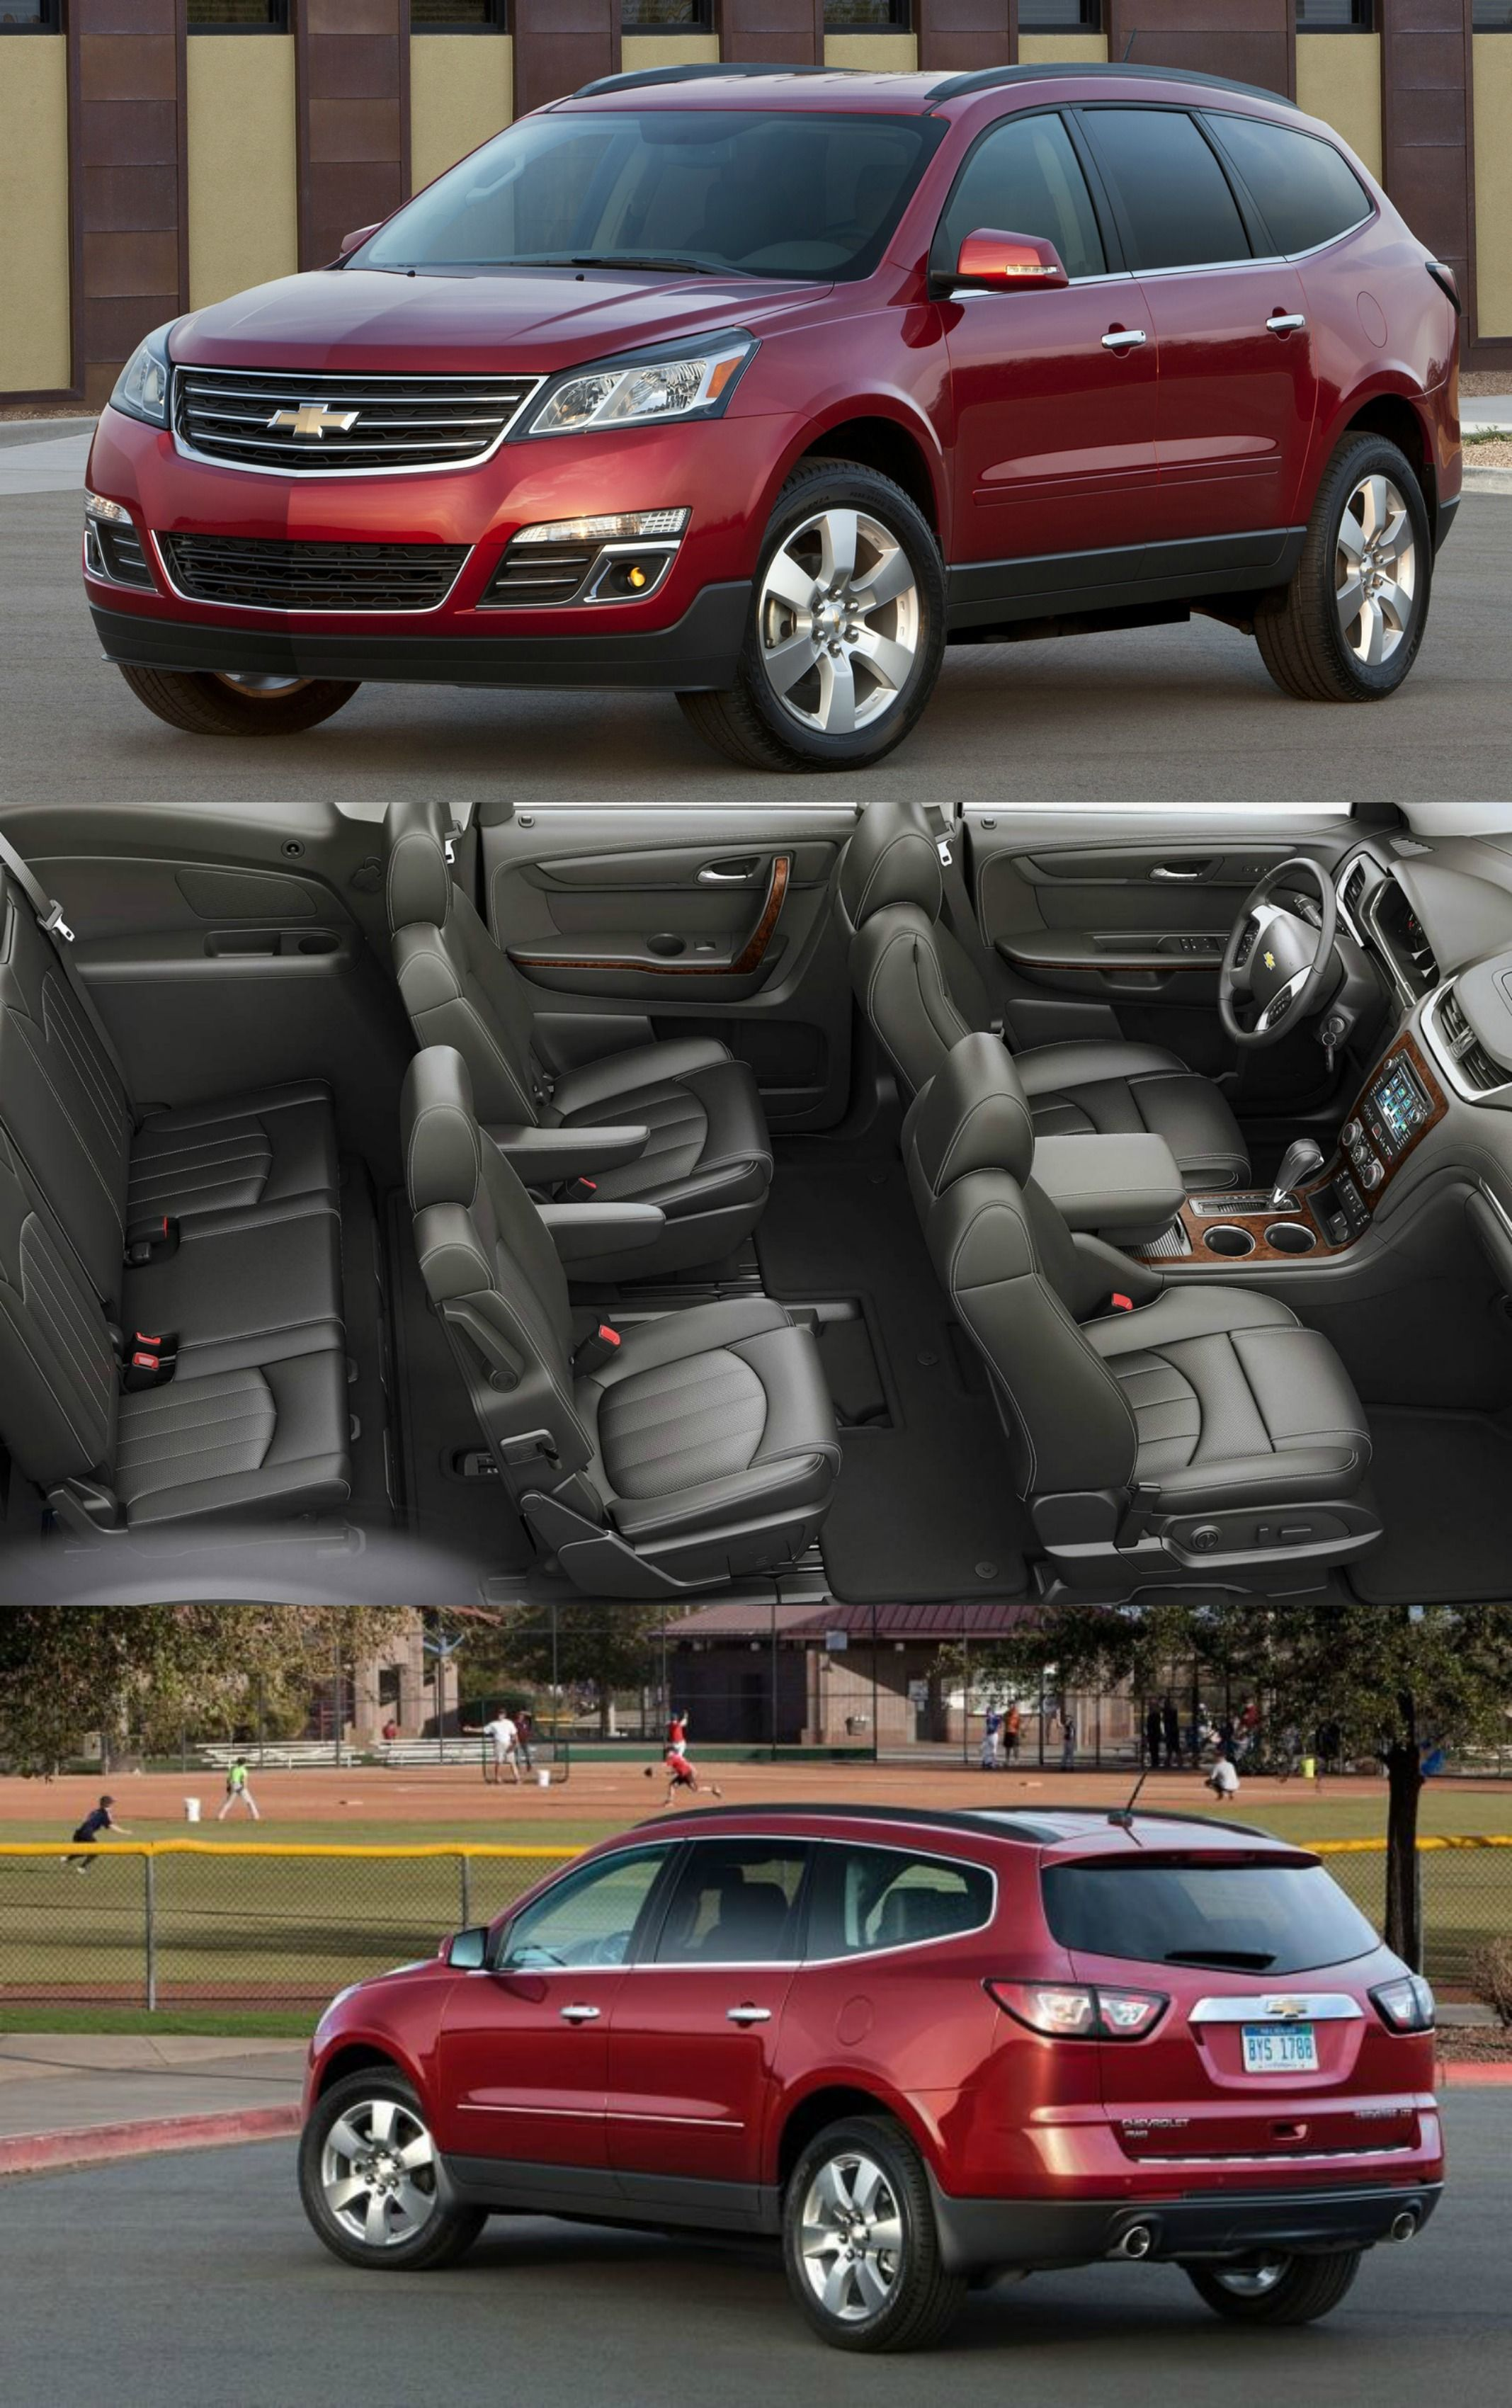 Chevy traverse floor mats cargo area premium all weather at partscheap com chevrolet accessories pinterest chevy and chevrolet